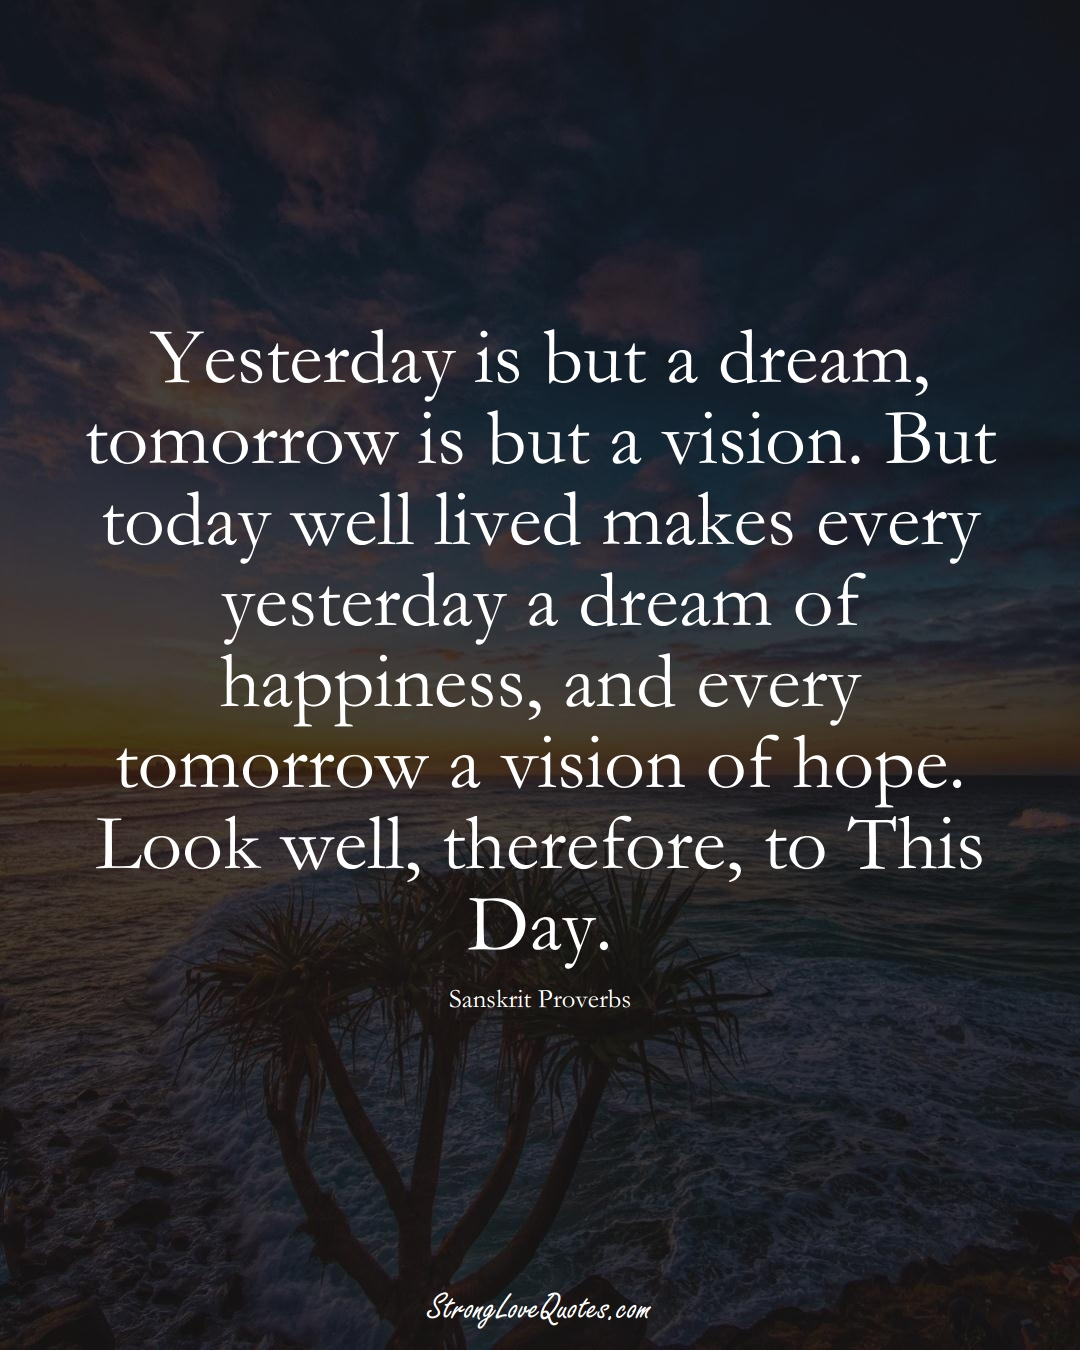 Yesterday is but a dream, tomorrow is but a vision. But today well lived makes every yesterday a dream of happiness, and every tomorrow a vision of hope. Look well, therefore, to This Day. (Sanskrit Sayings);  #aVarietyofCulturesSayings